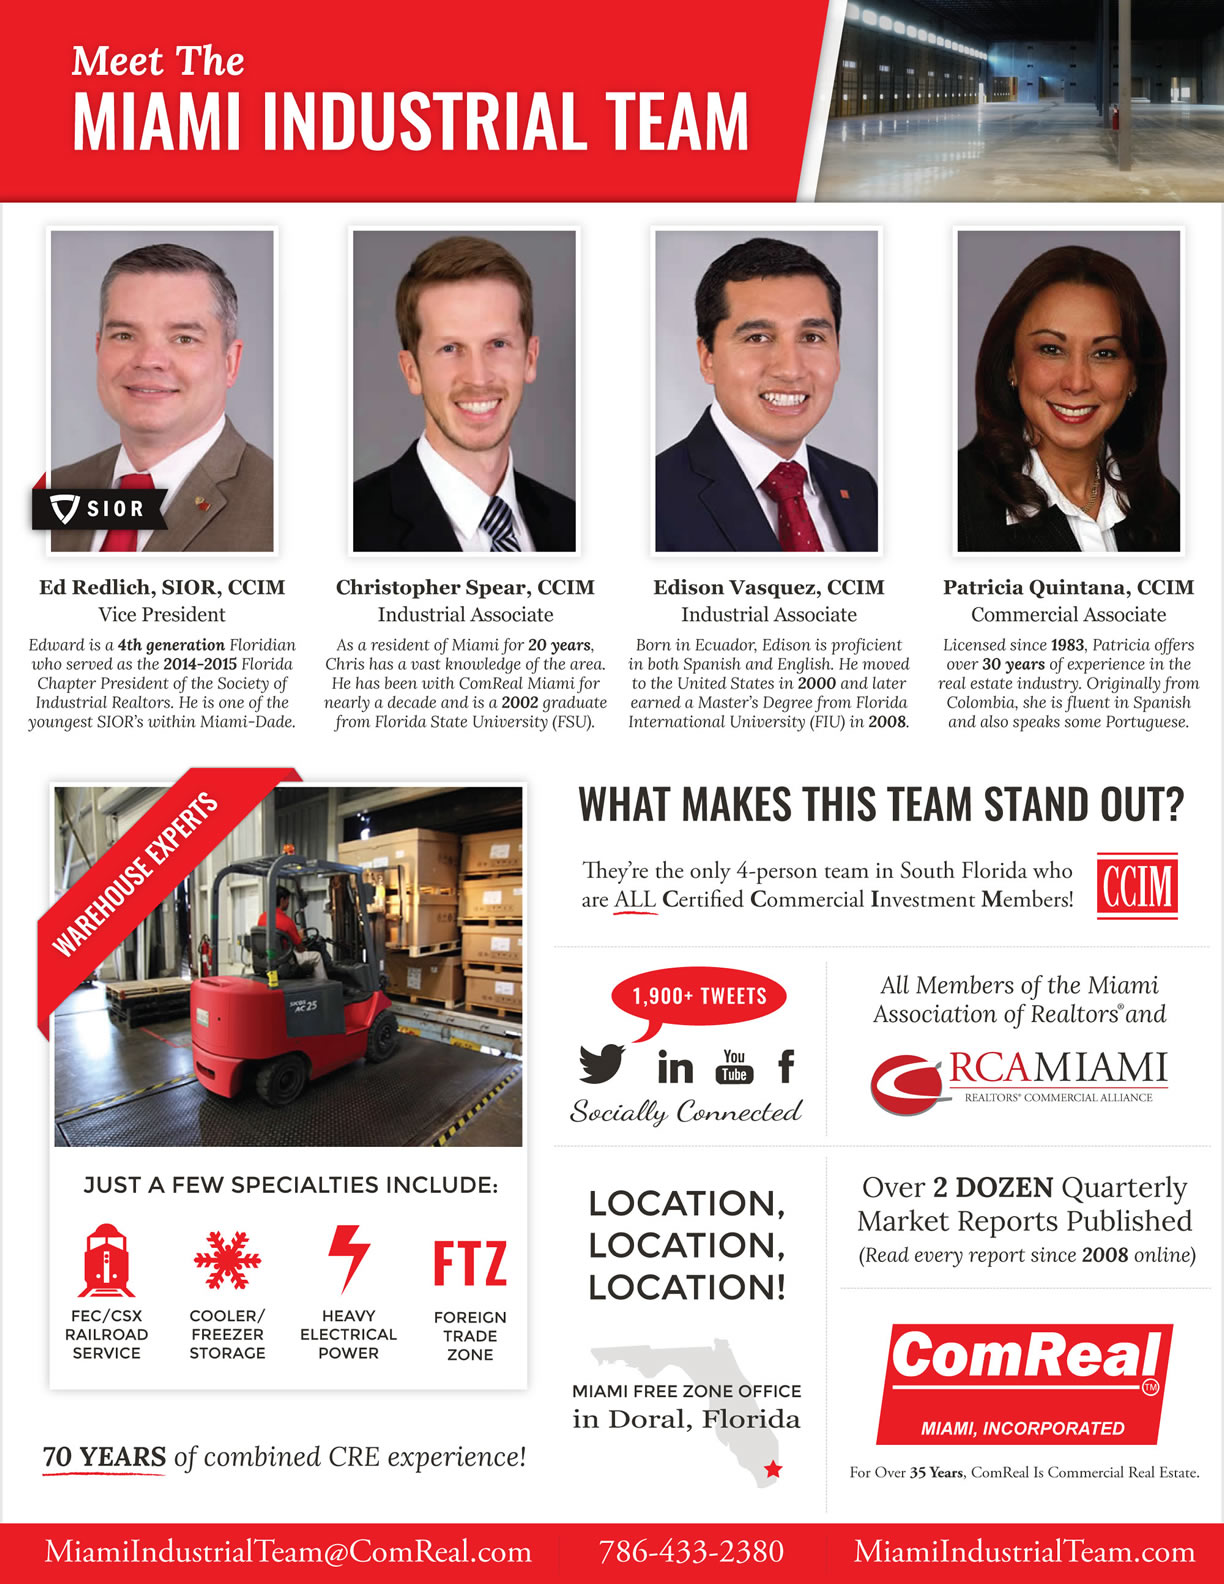 Meet The Miami Industrial Team